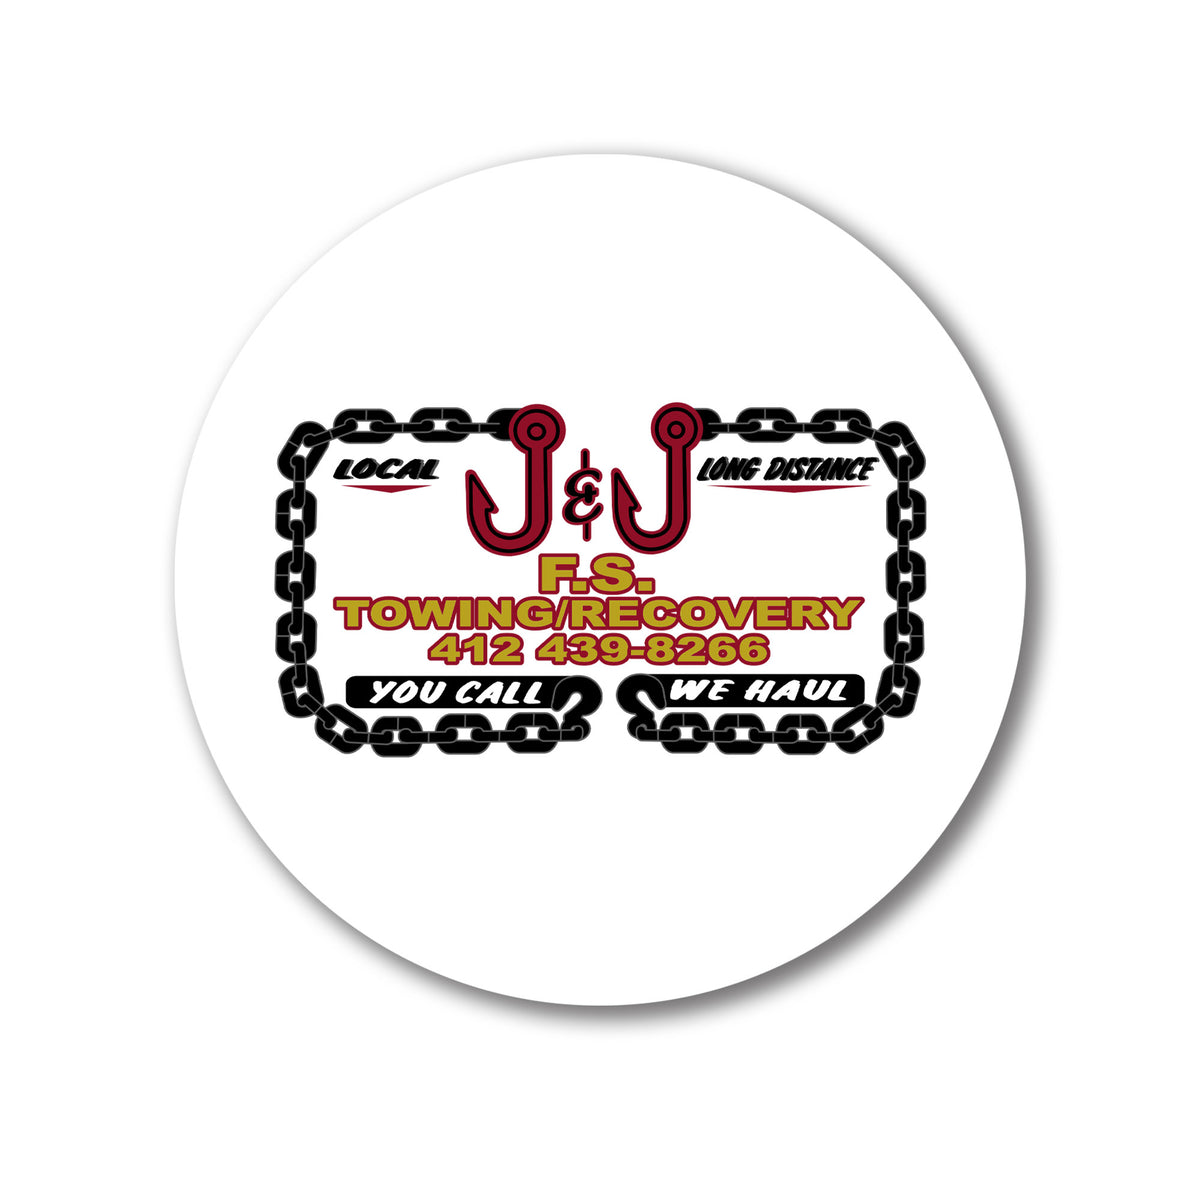 J&J Towing We Support PA Coasters